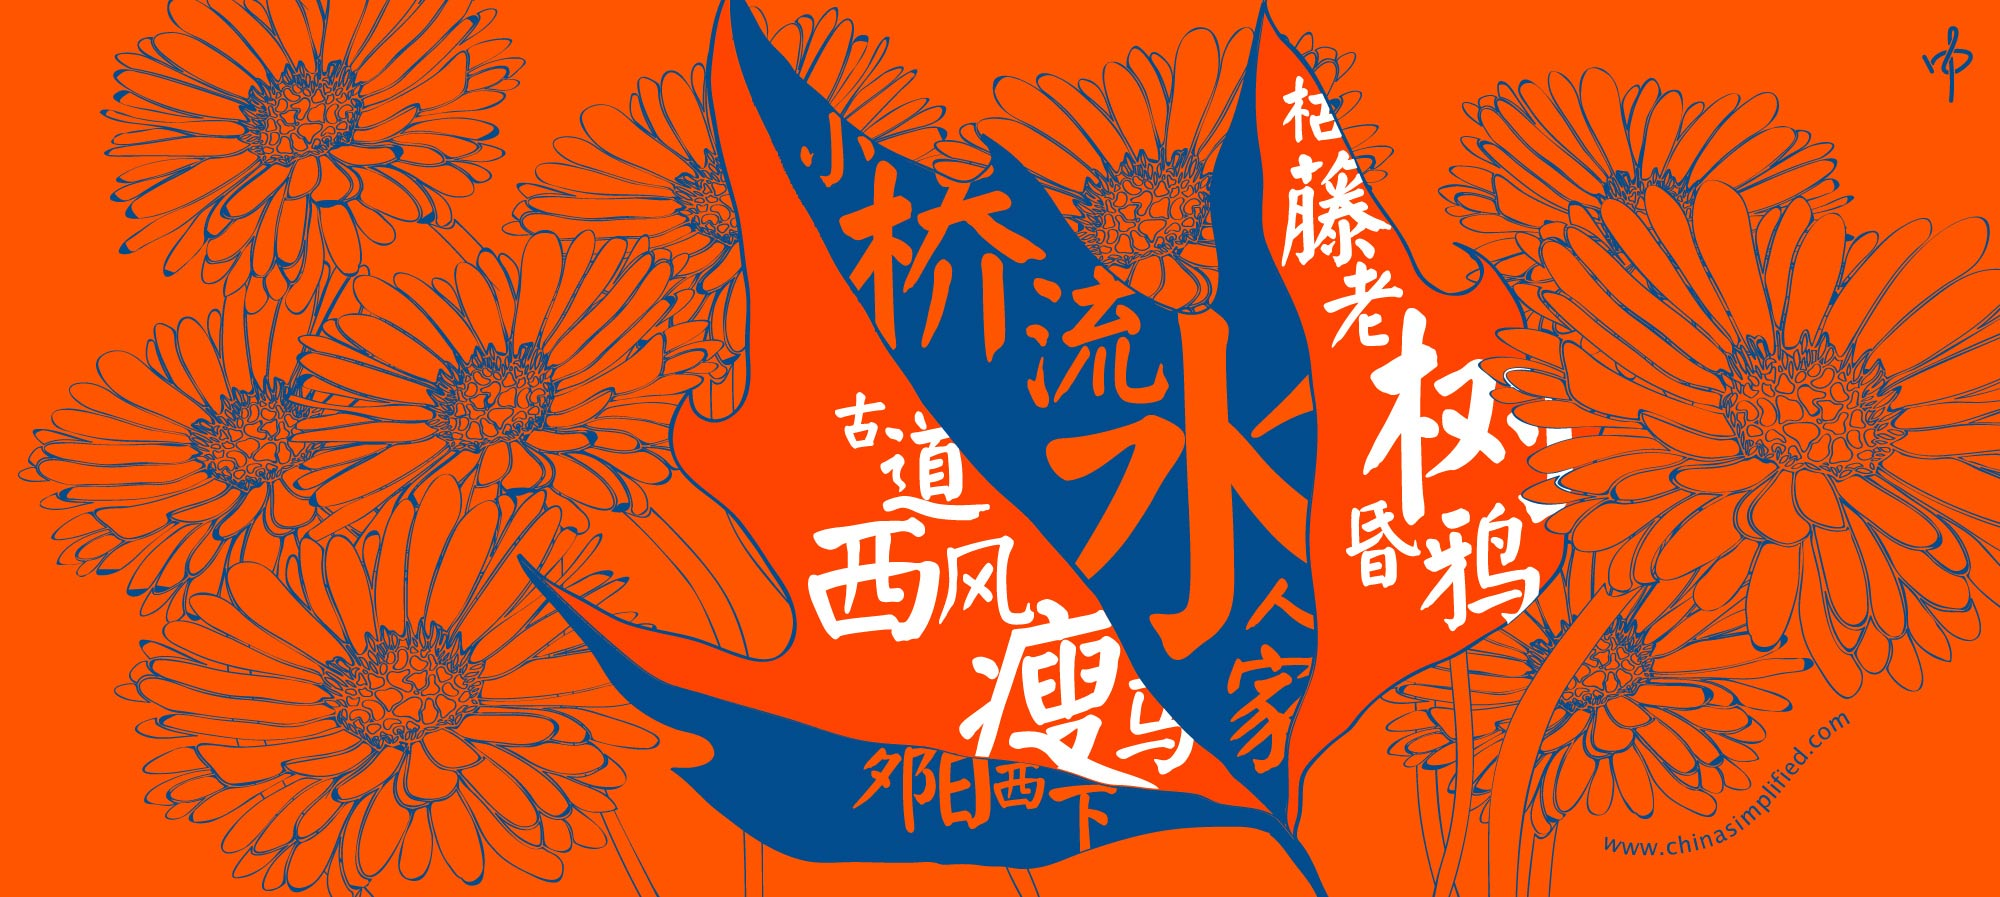 Autumn Impressions – A Cultural Collage of China's Fall Season